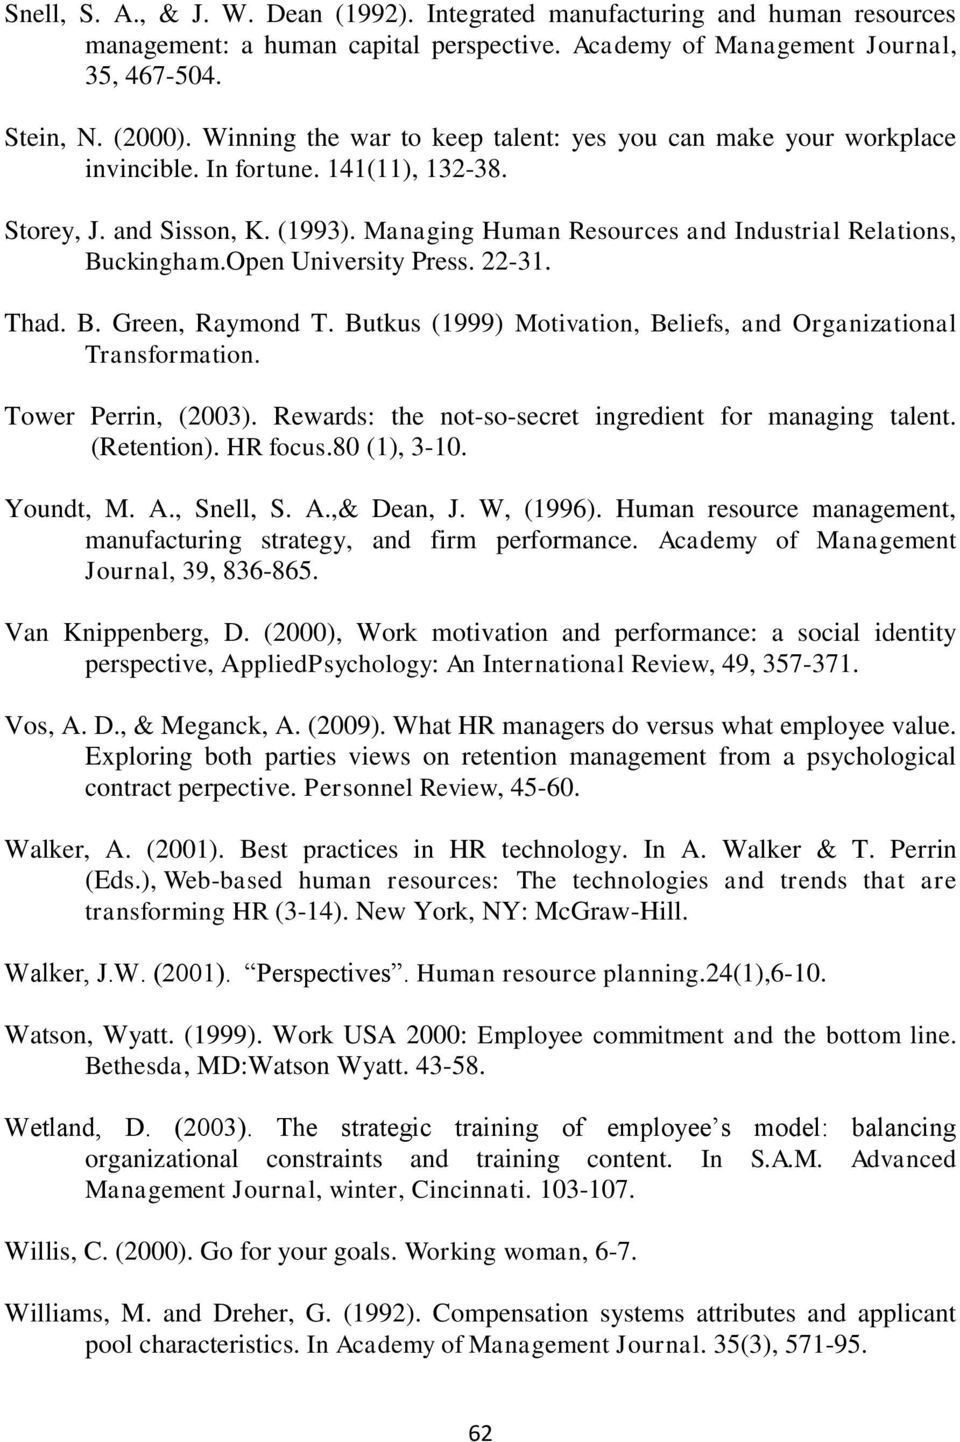 Managing Human Resources and Industrial Relations, Buckingham.Open University Press. 22-31. Thad. B. Green, Raymond T. Butkus (1999) Motivation, Beliefs, and Organizational Transformation.